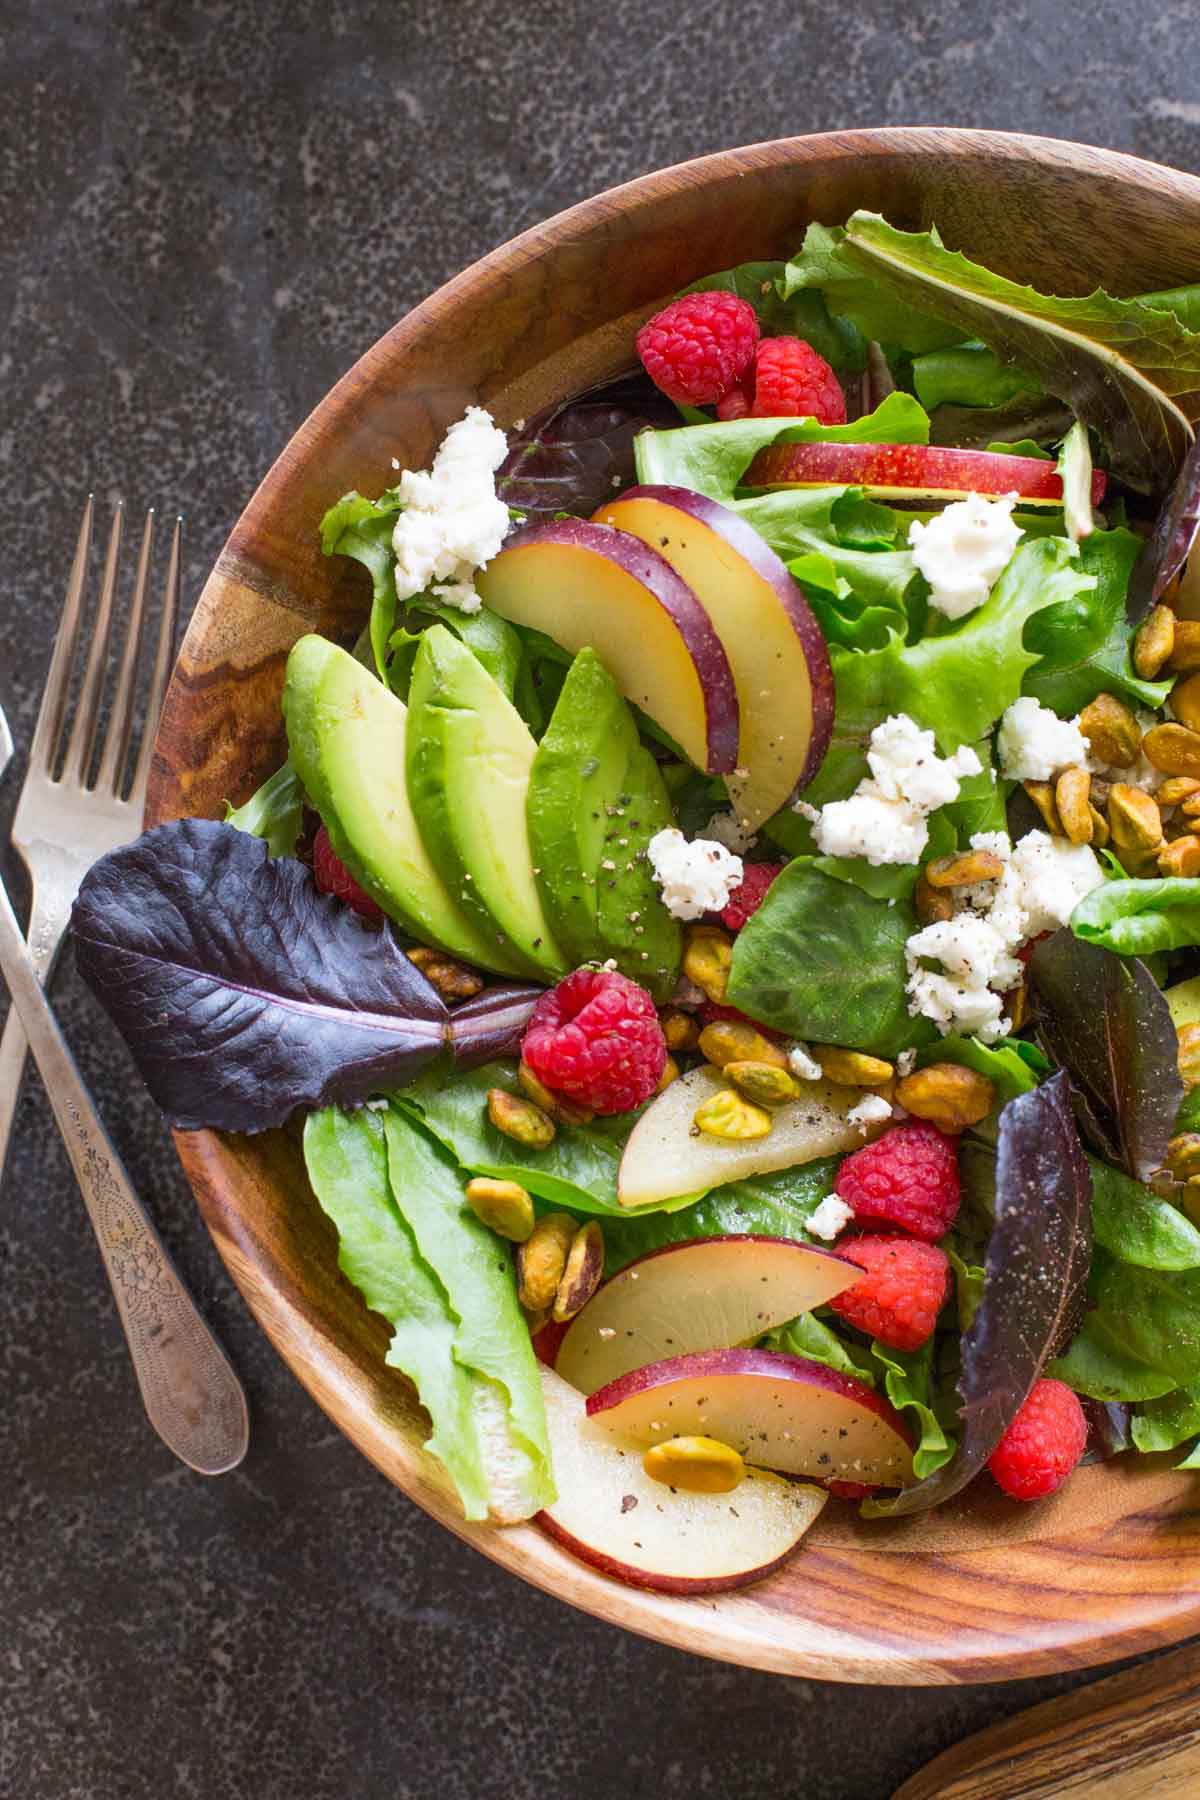 I just love my Summer Fruited Salad with Goat Cheese and Pistachio - we've got tangy, crunchy, salty, sweet, juicy, and creamy all in one fabulous bite!